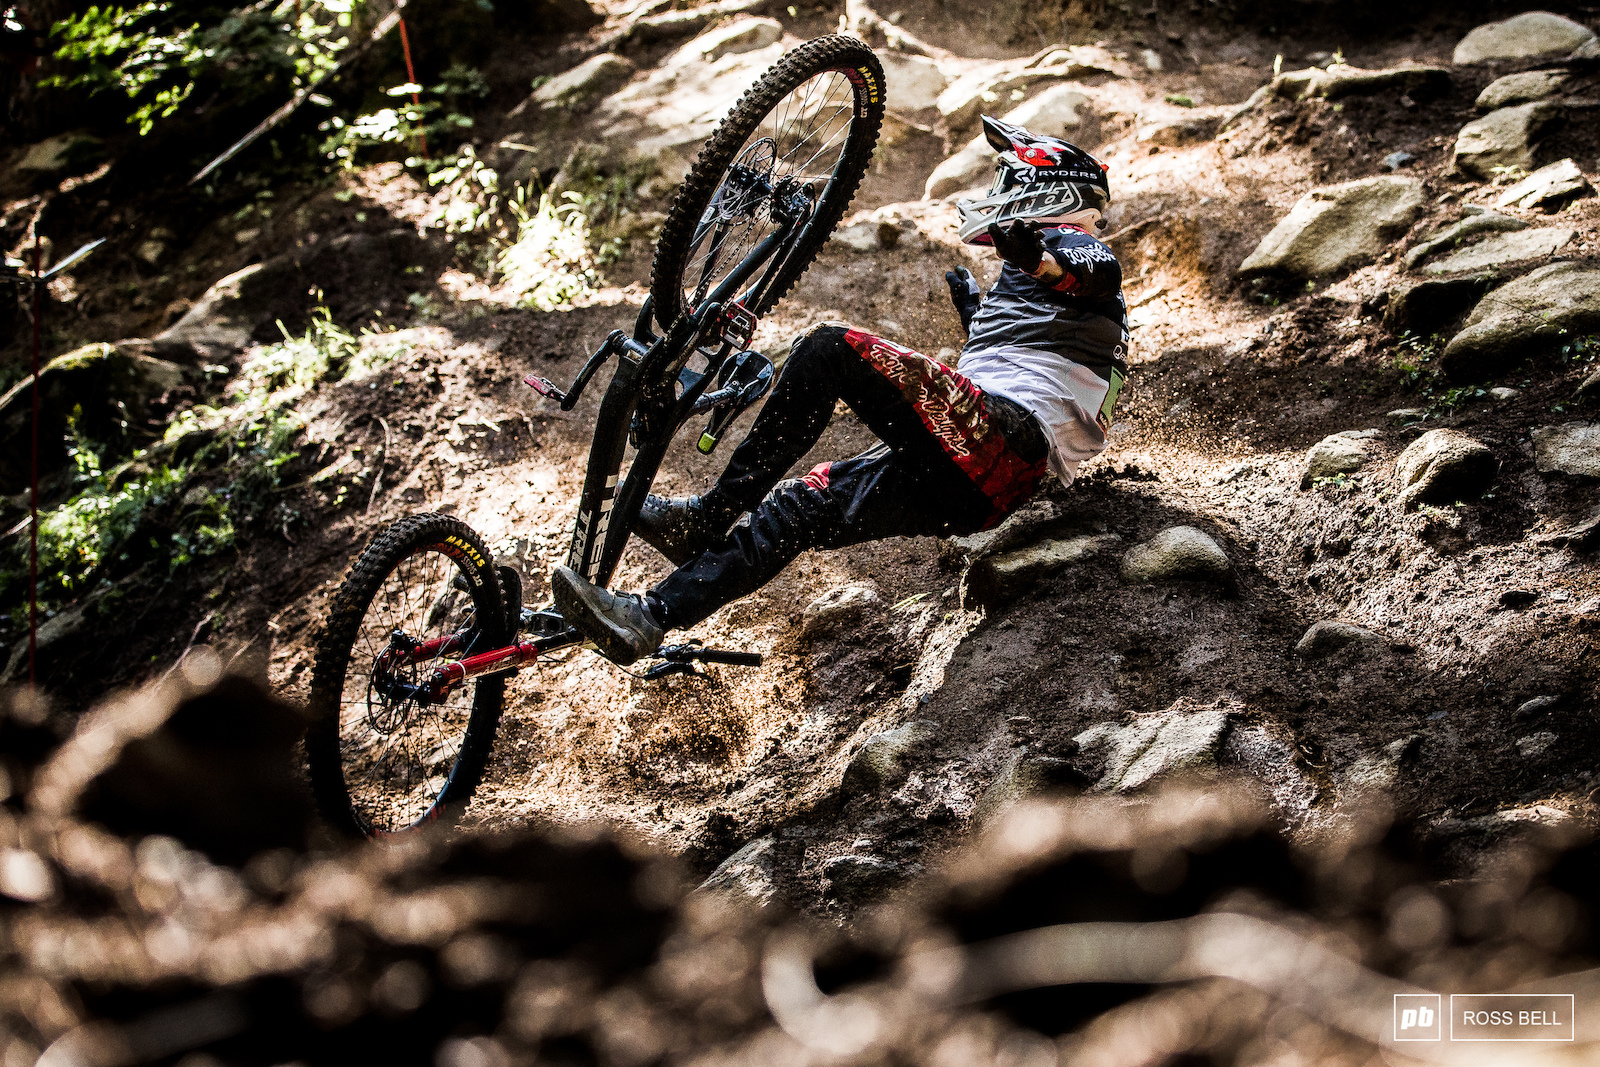 Lucas Cruz s hopes of the podium were dashed in a big crash. We were glad to see him get up unscathed and finish off his run.